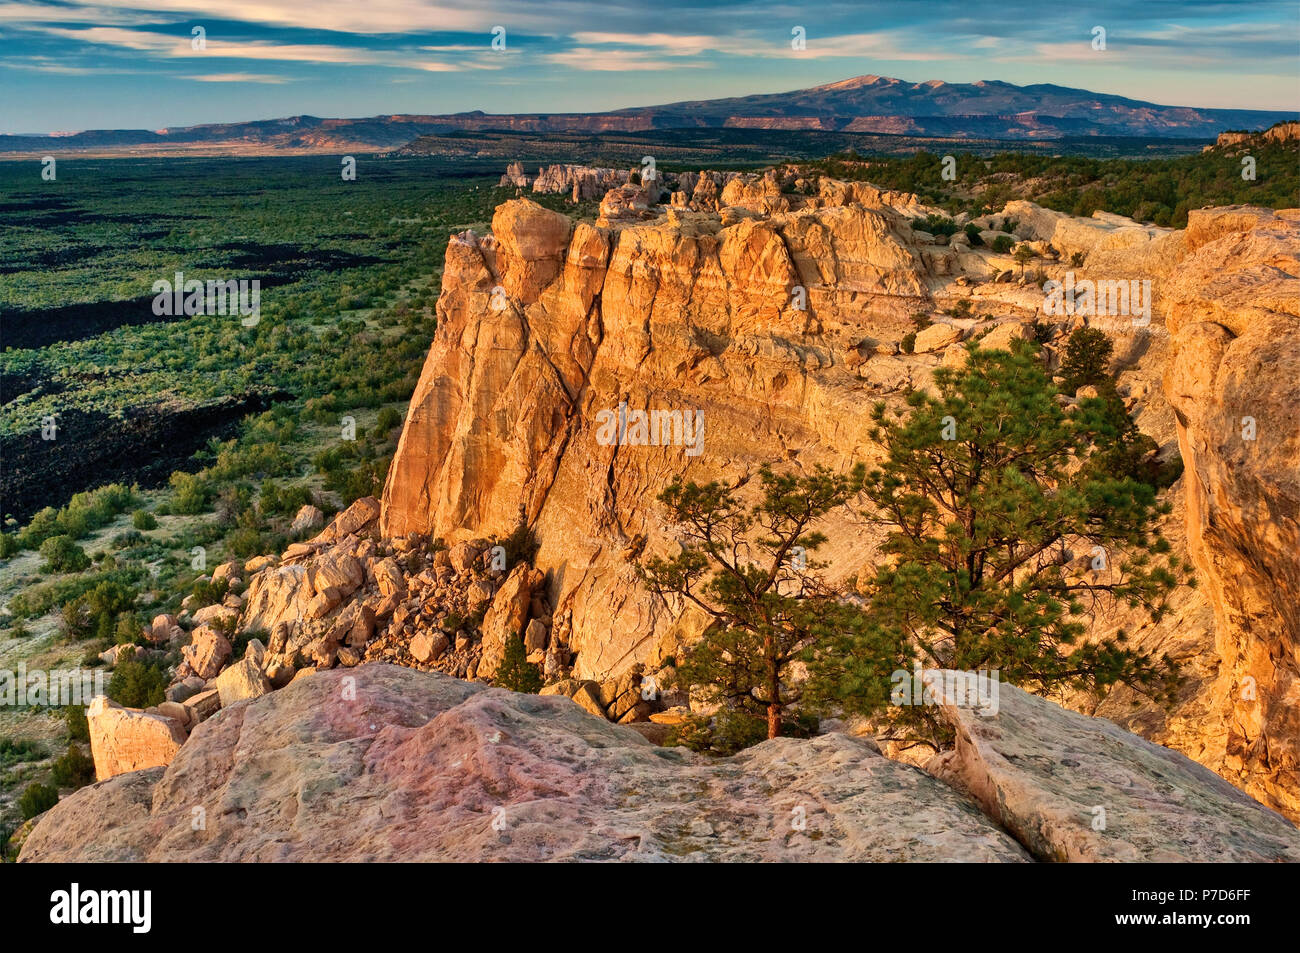 Sandstone Bluffs over lava field at El Malpais National Monument, sunset, Mt Taylor in San Mateo Mountains in distance, New Mexico, USA - Stock Image